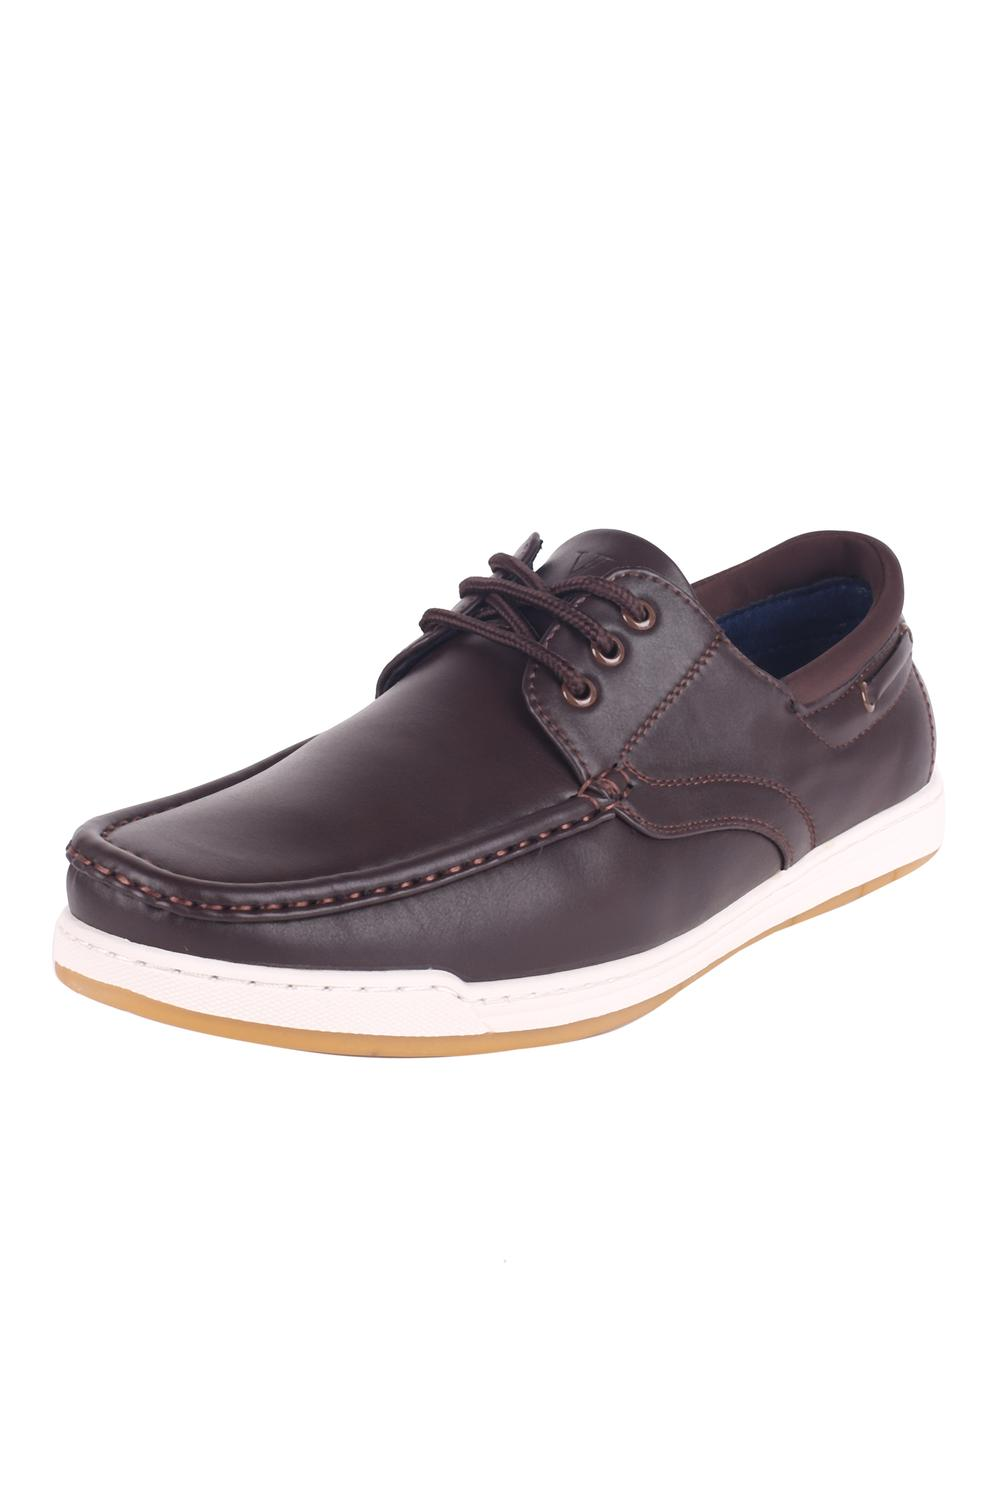 fb0bf3d93af0 V Dot Footwear, Van Heusen Brown Lace Up Shoes for Men at Vanheusenindia.com